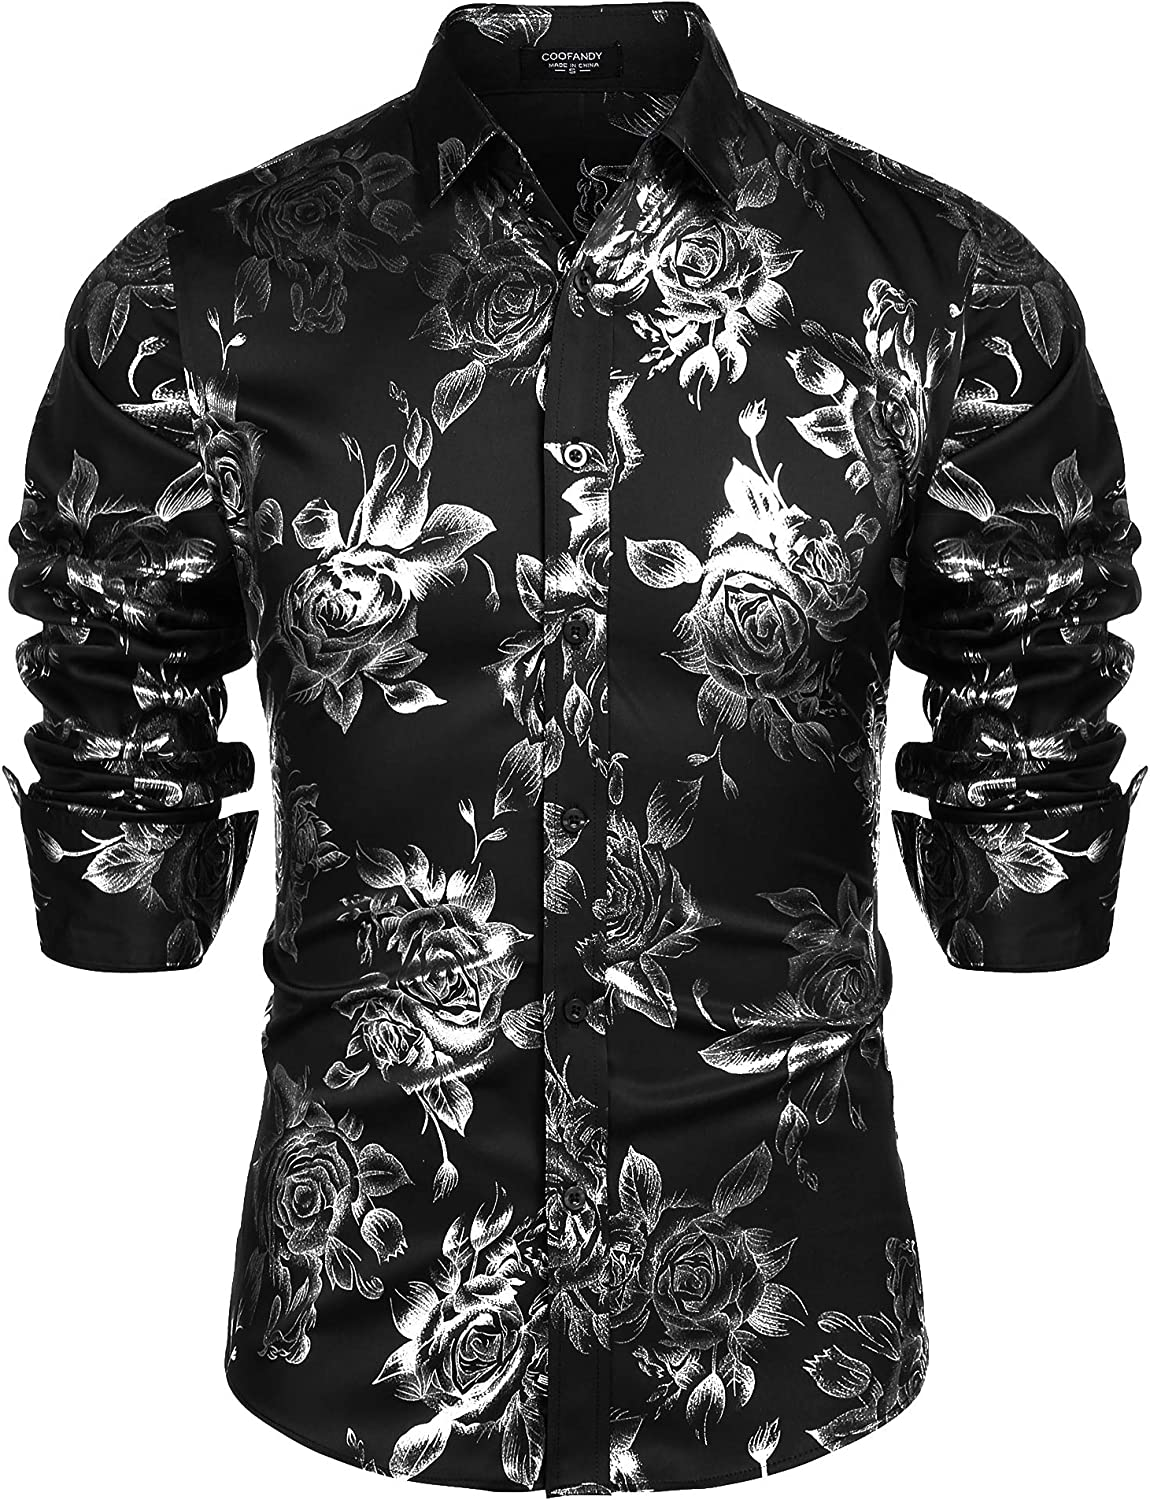 Details about  /COOFANDY Men/'s Rose Shiny Shirt Luxury Flowered Printed Button Down Shirt